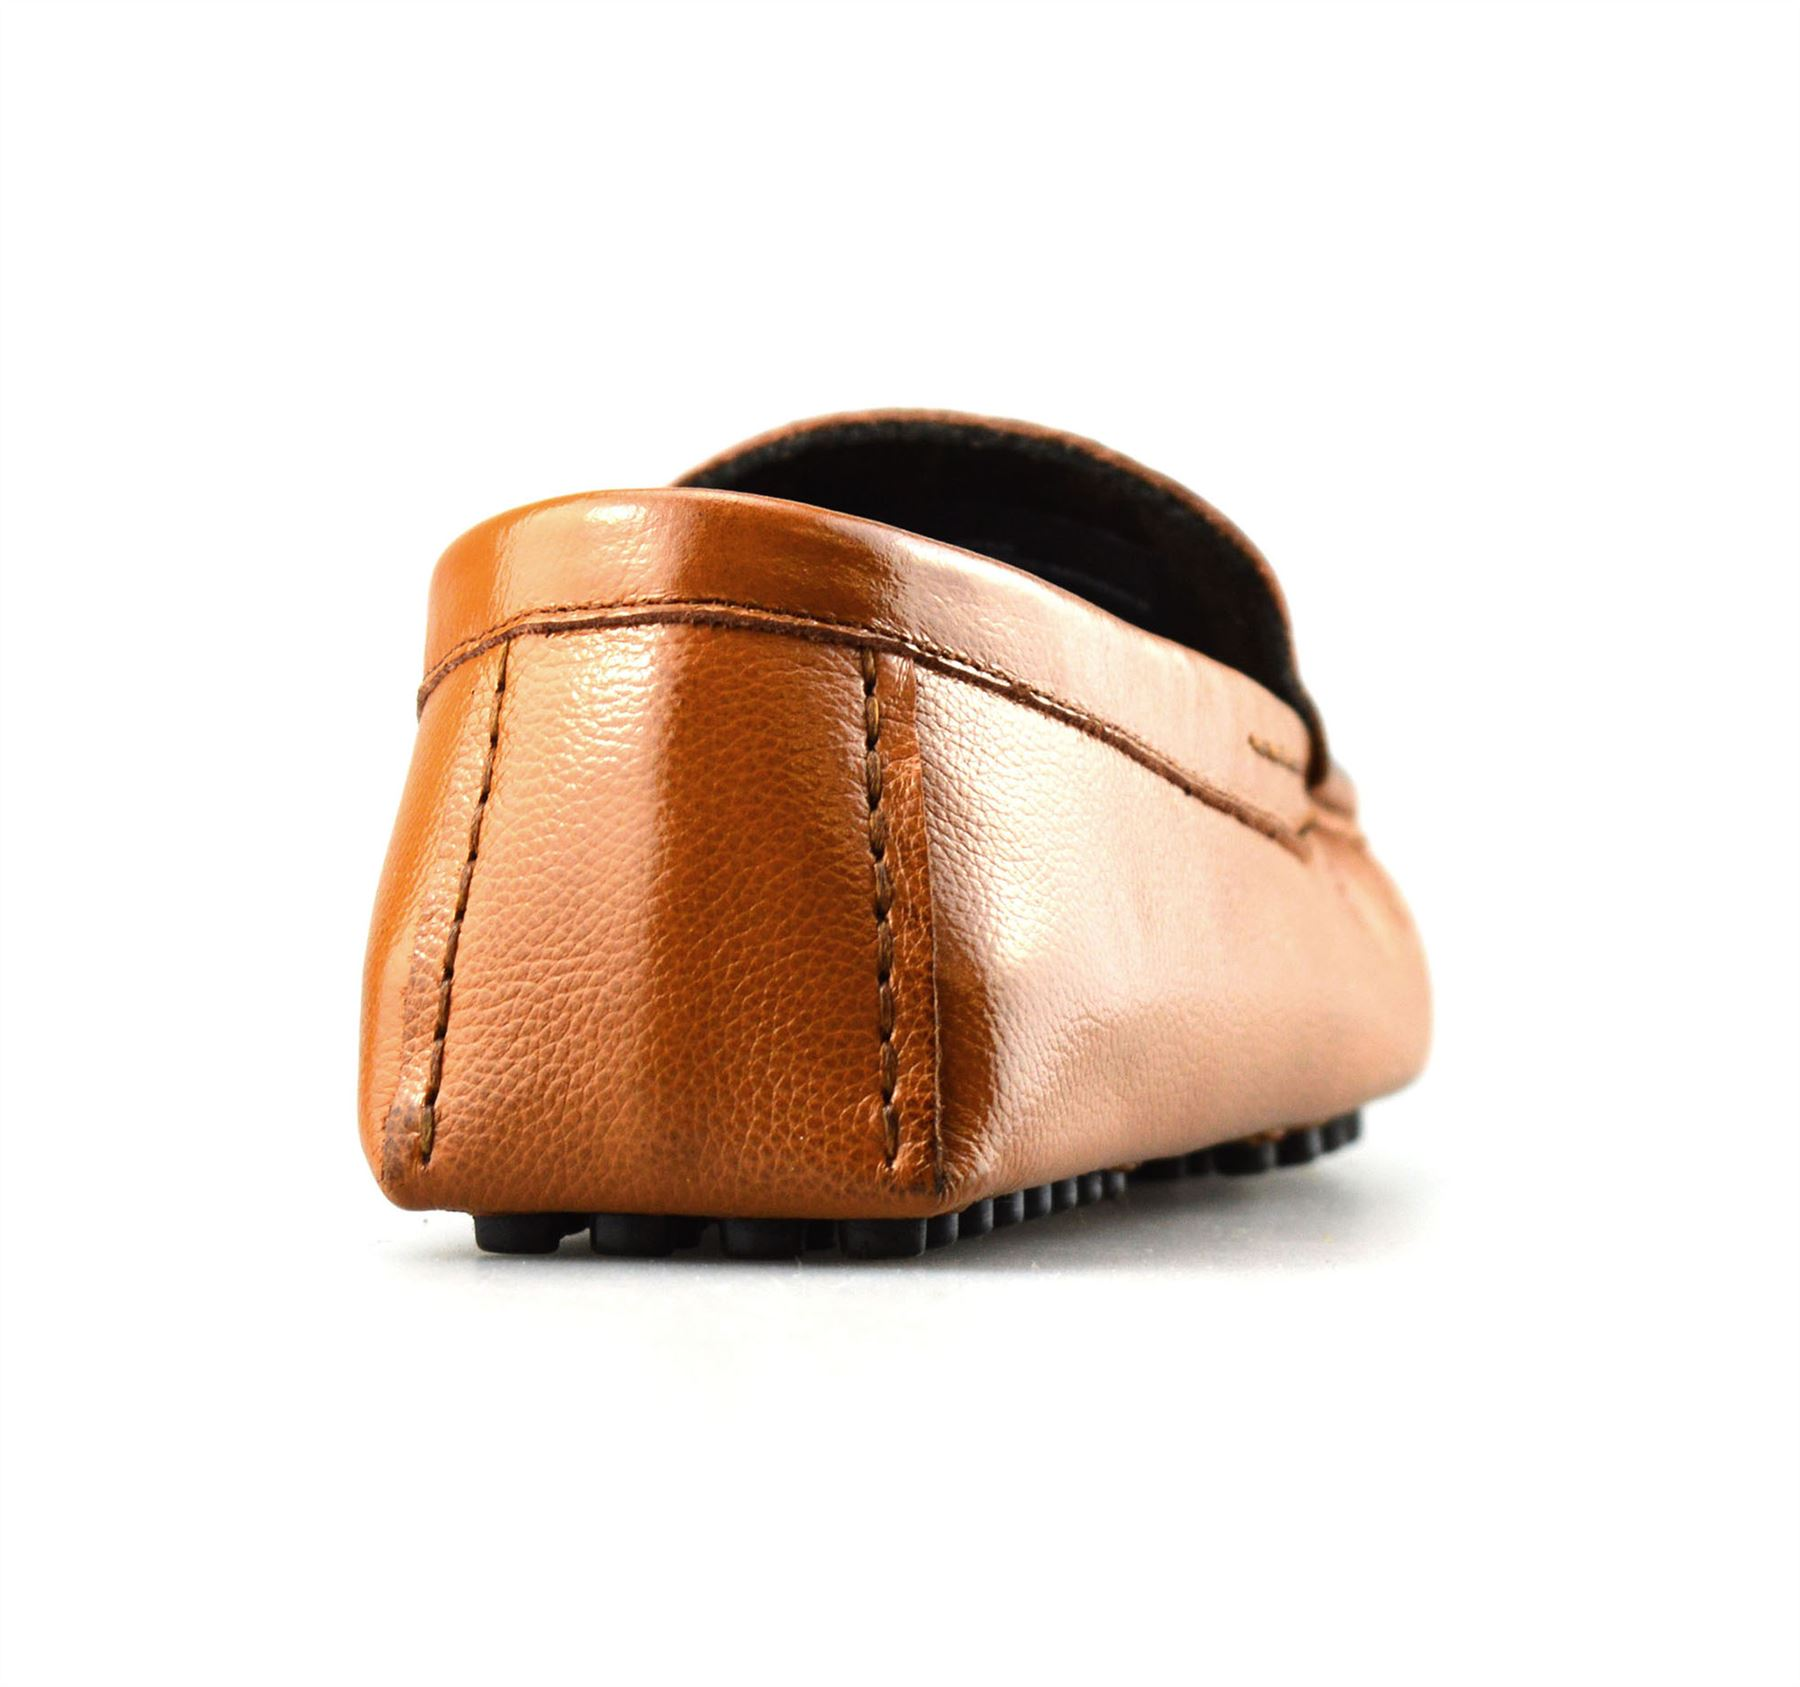 Mens-Leather-Slip-On-Casual-Smart-Loafers-Mocassin-Designer-Driving-Shoes-Size thumbnail 12